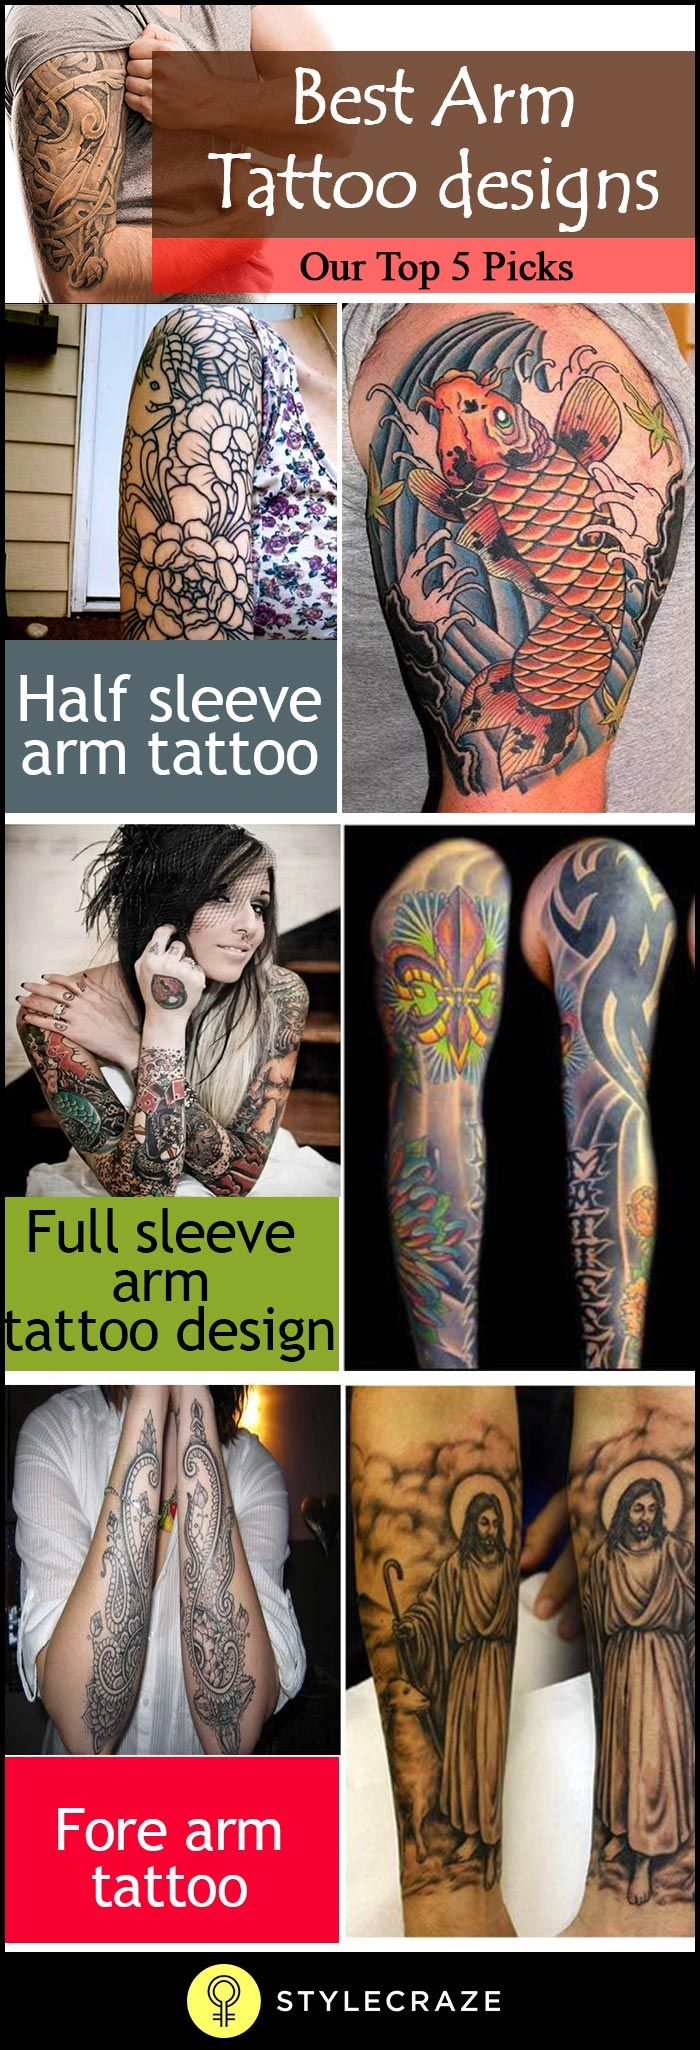 17 Best images about Tattoos and body art on Pinterest ...